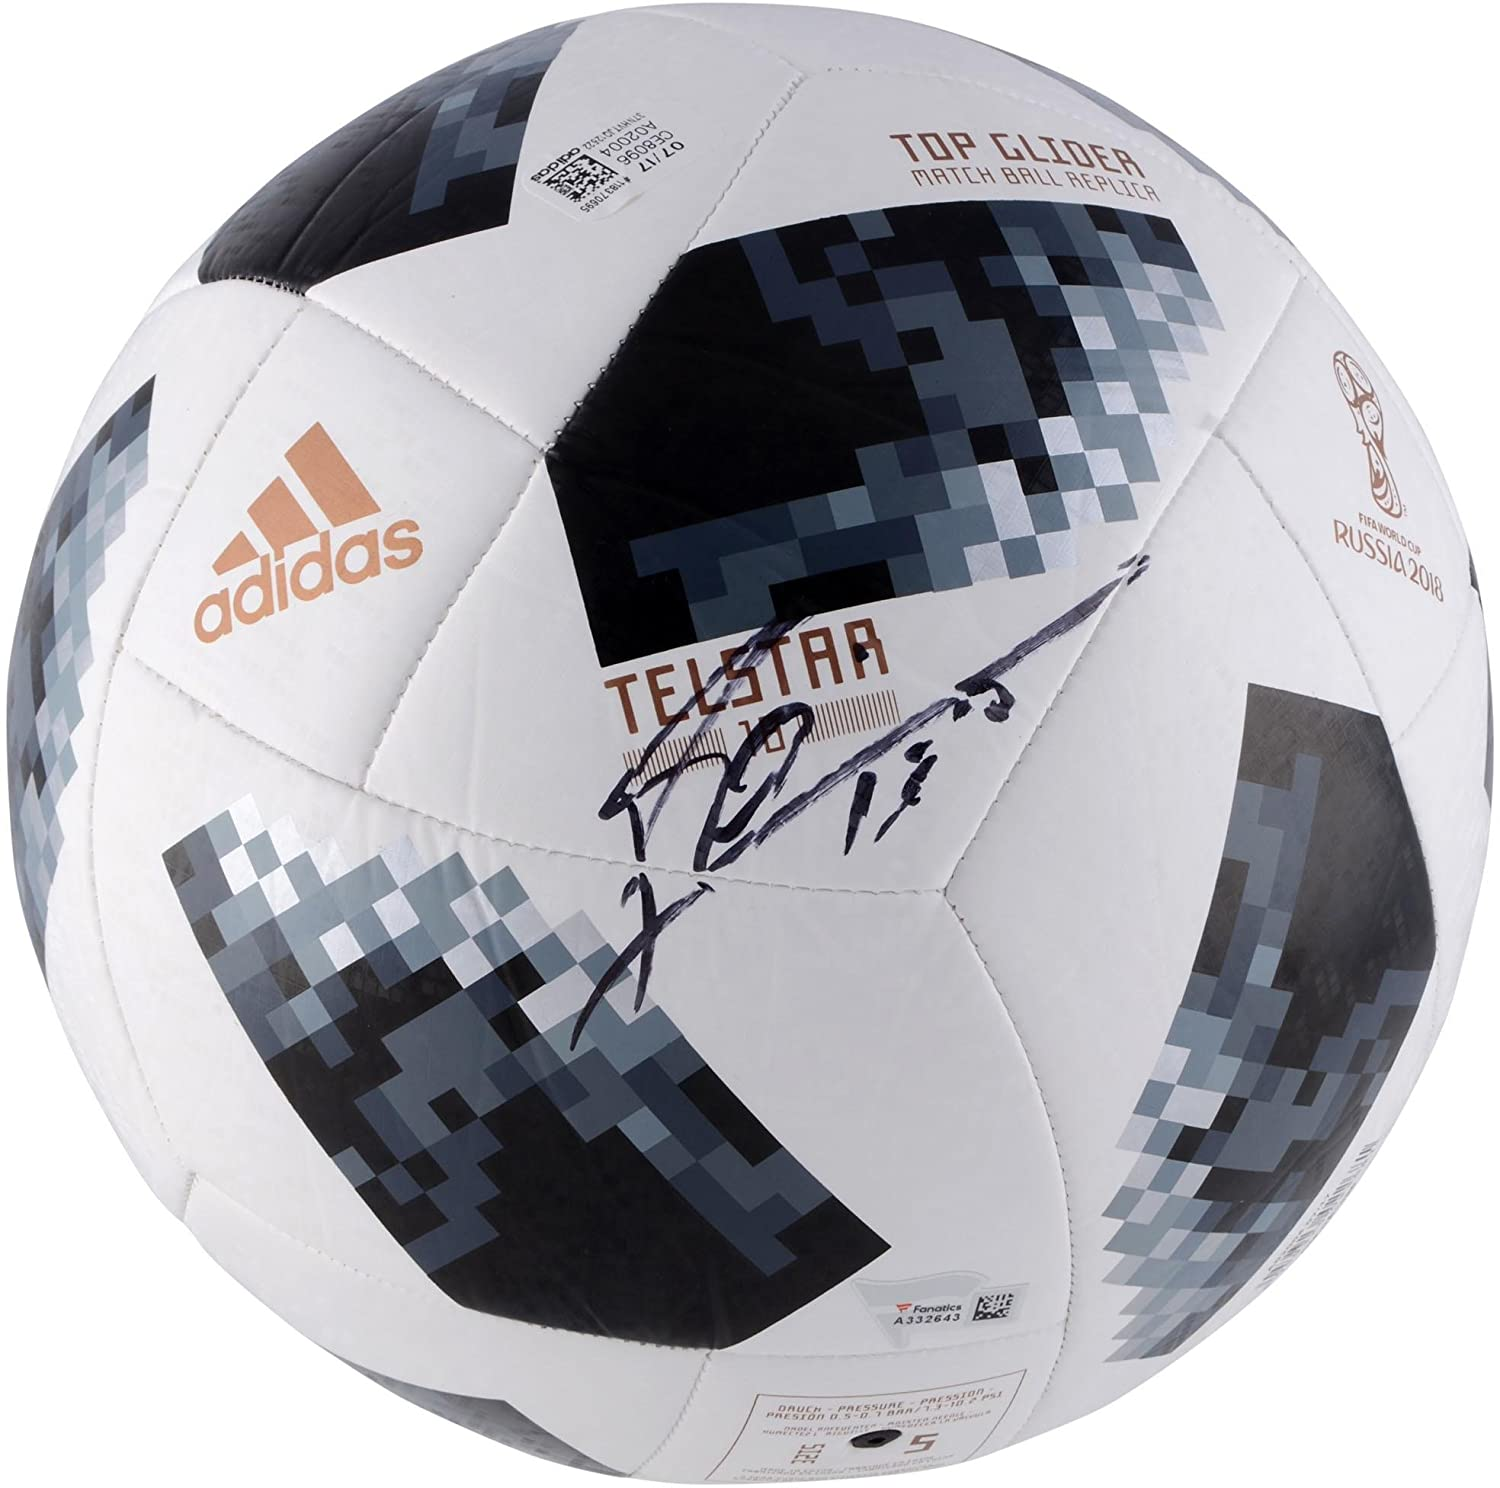 01d9d384b8d Lionel Messi Argentina Autographed 2018 FIFA World Cup Telstar 18 Soccer  Ball - Fanatics Authentic Certified at Amazon s Sports Collectibles Store